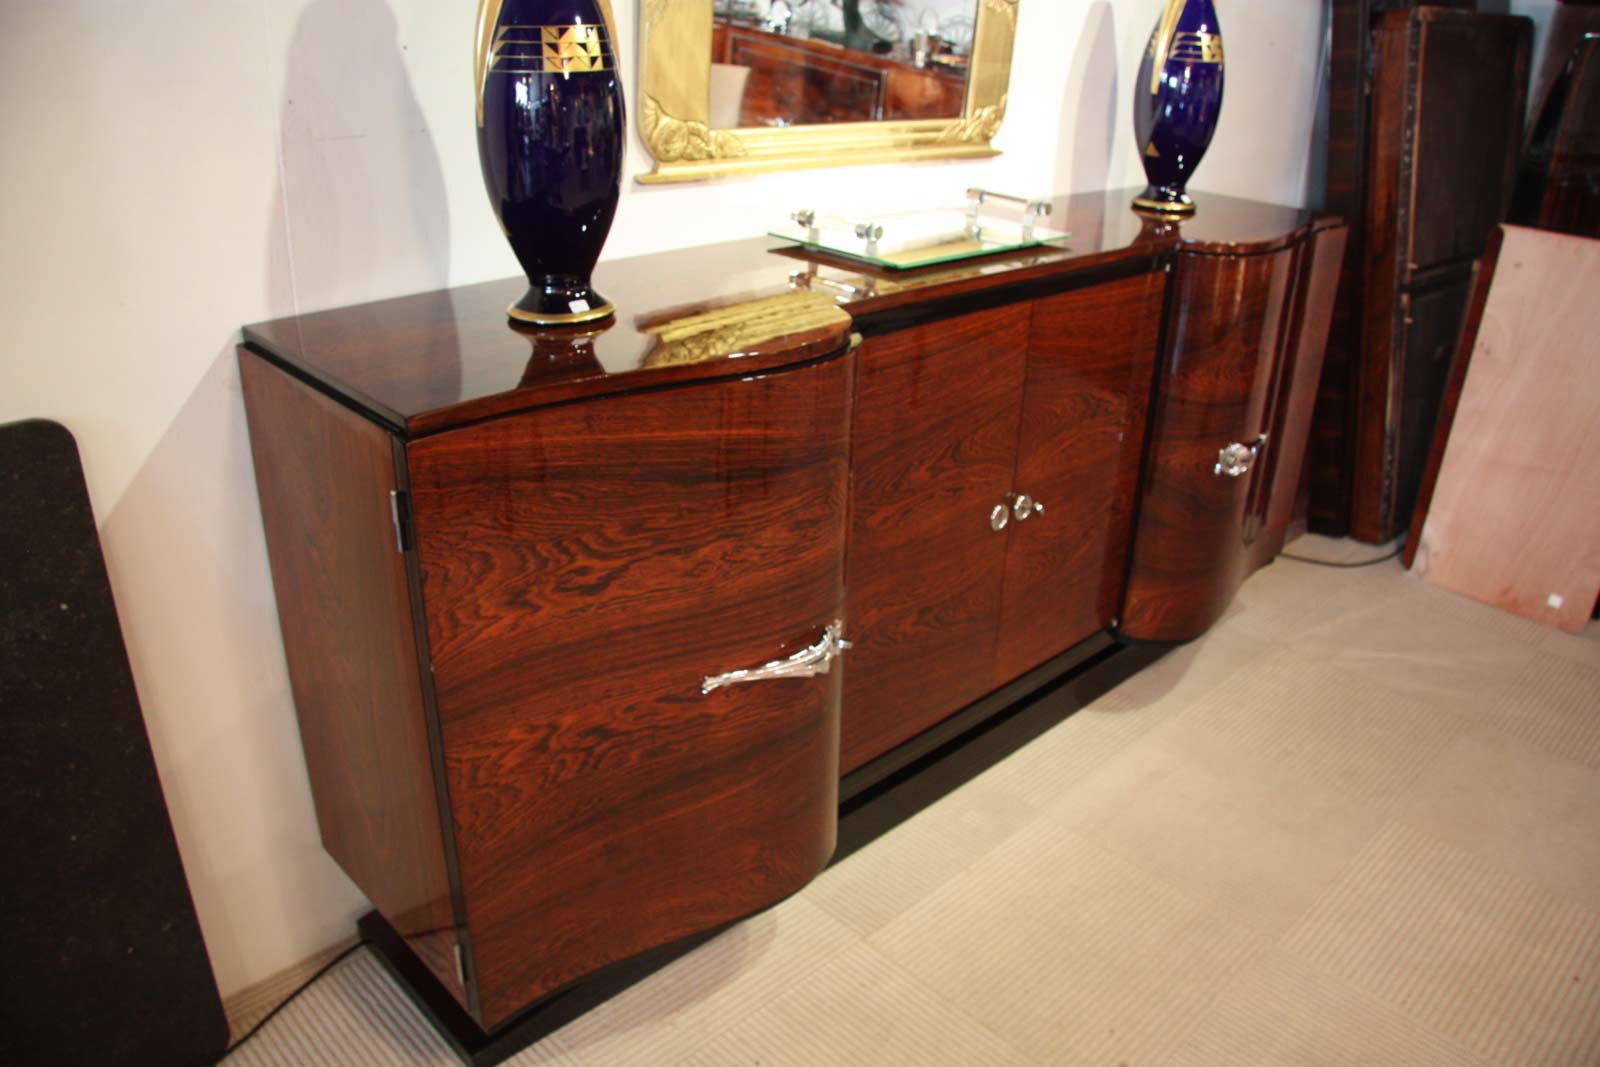 enfilade sideboard en palissandre de rio art d co ref enf. Black Bedroom Furniture Sets. Home Design Ideas